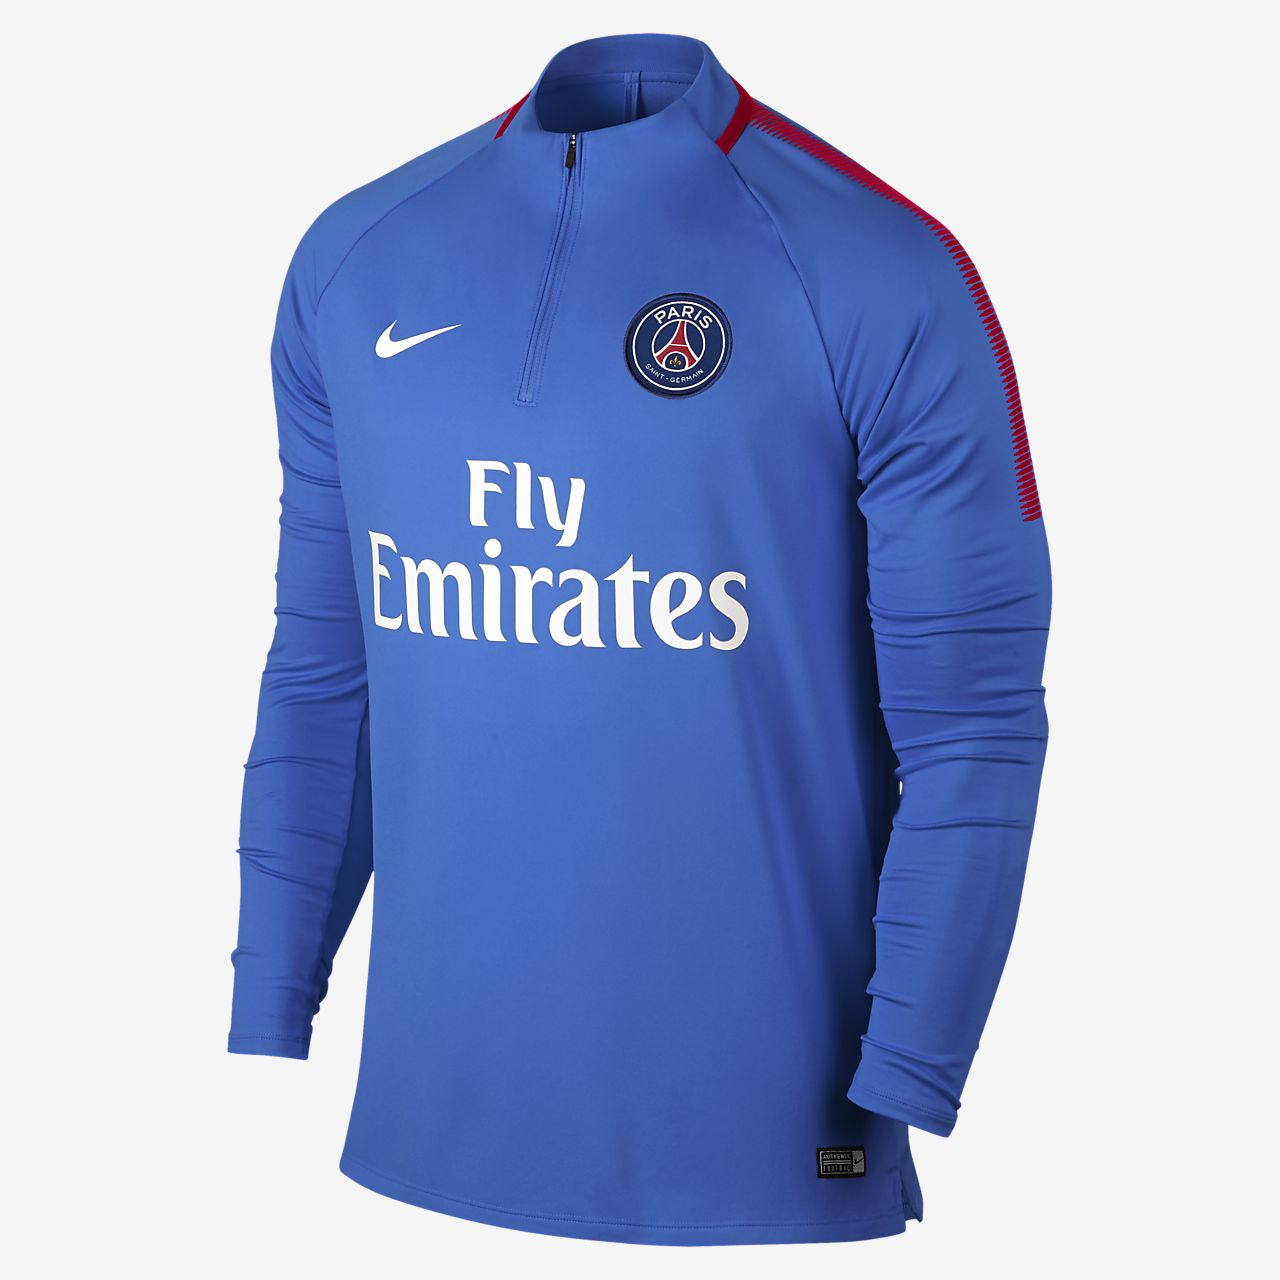 dc06fa999276 Nike Paris Saint-Germain Squad Drill 17-18 Top - Soccer Shop Paris Saint  Germain Merchandise - Superfanas.lt